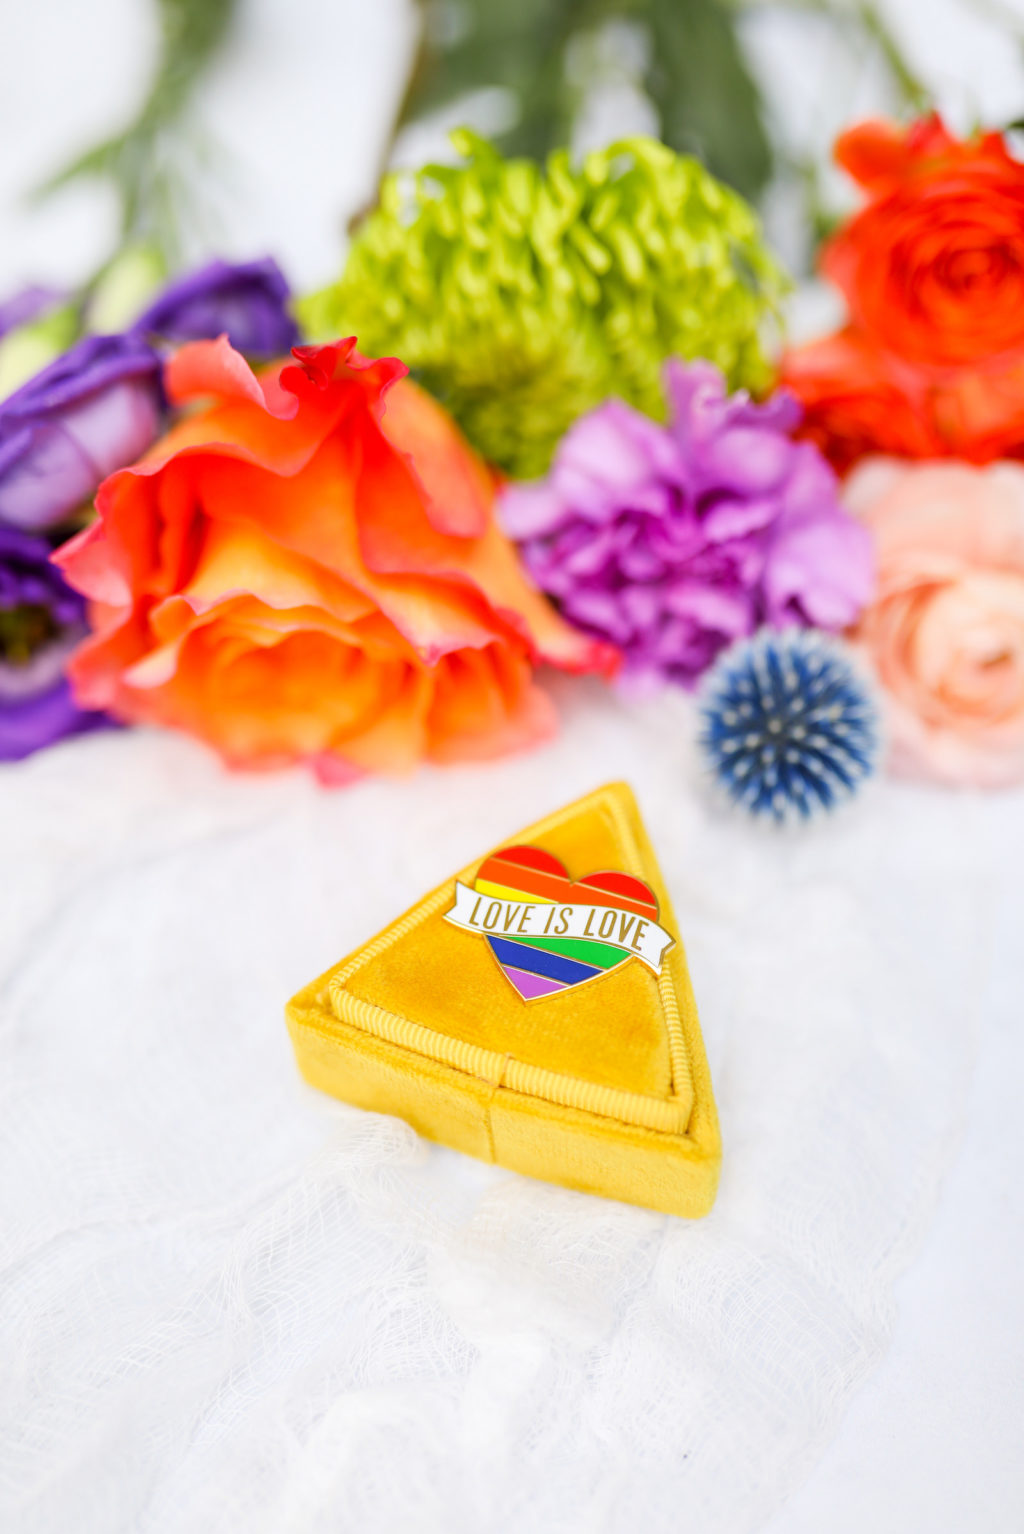 Gay LGBTQ+ Pride Wedding, Yellow Ring Box with Love is Love Rainbow Pin, Red, Purple, Green Flowers